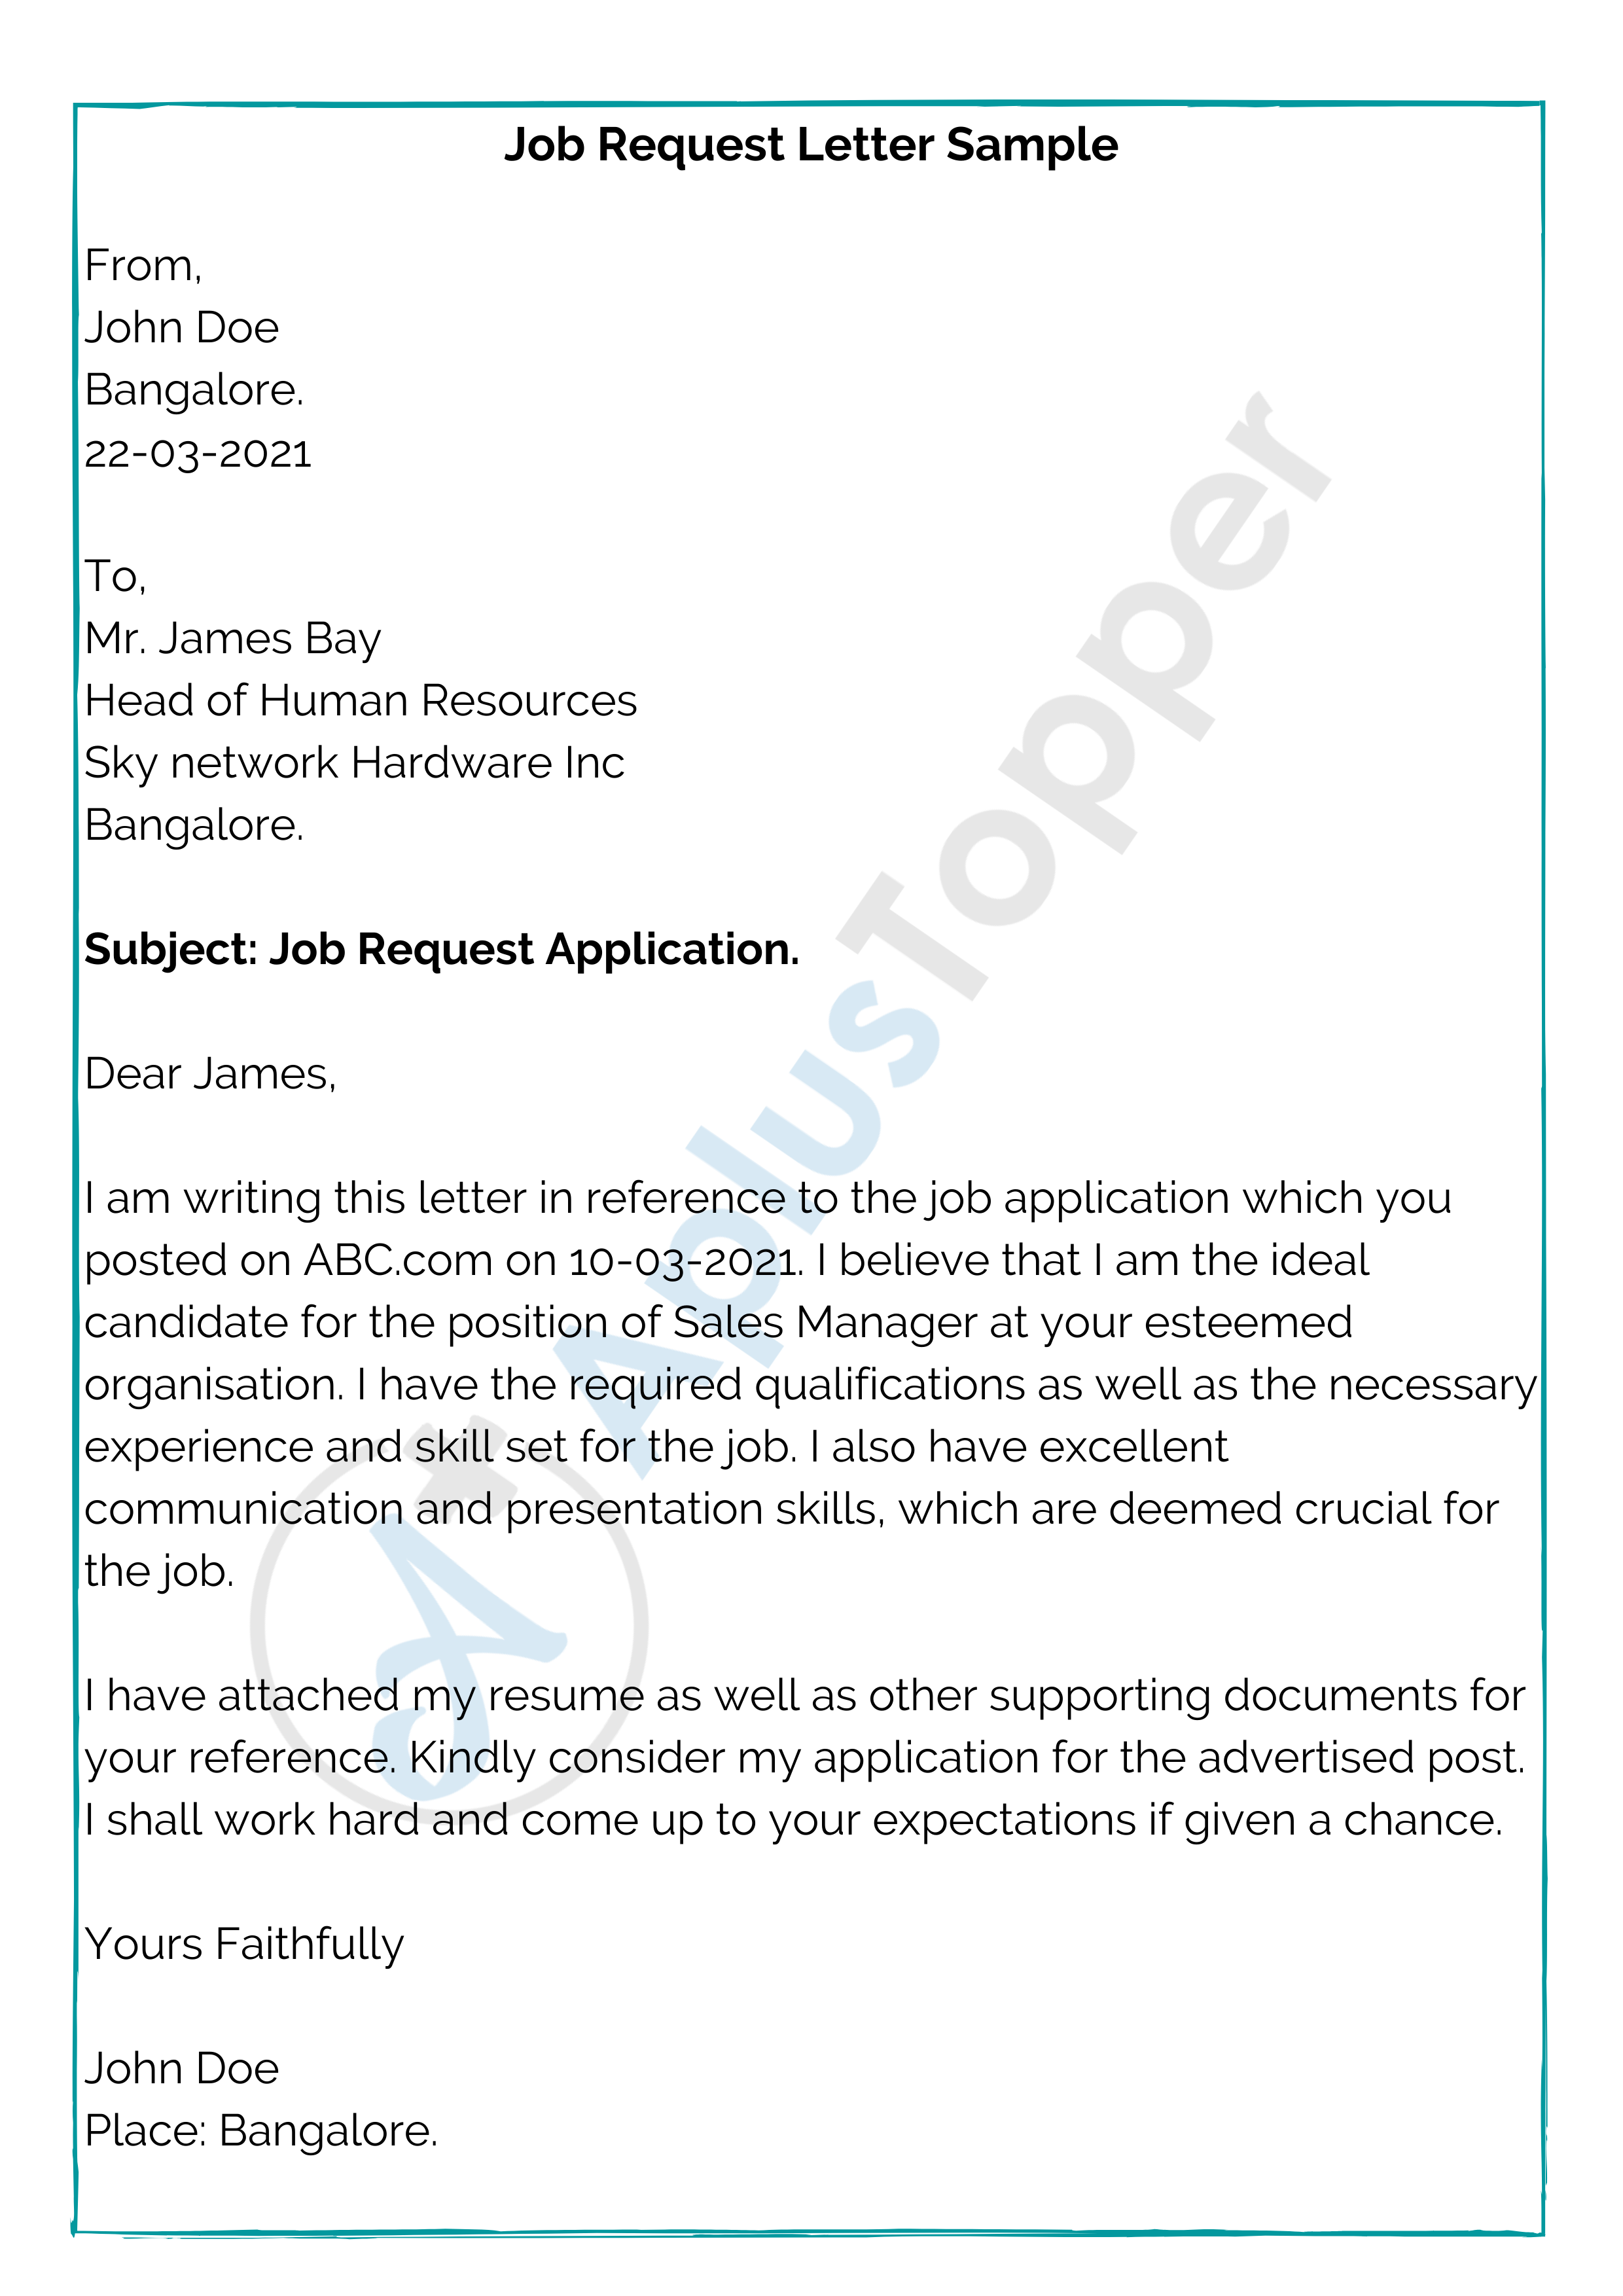 Job Request Letter How To Write